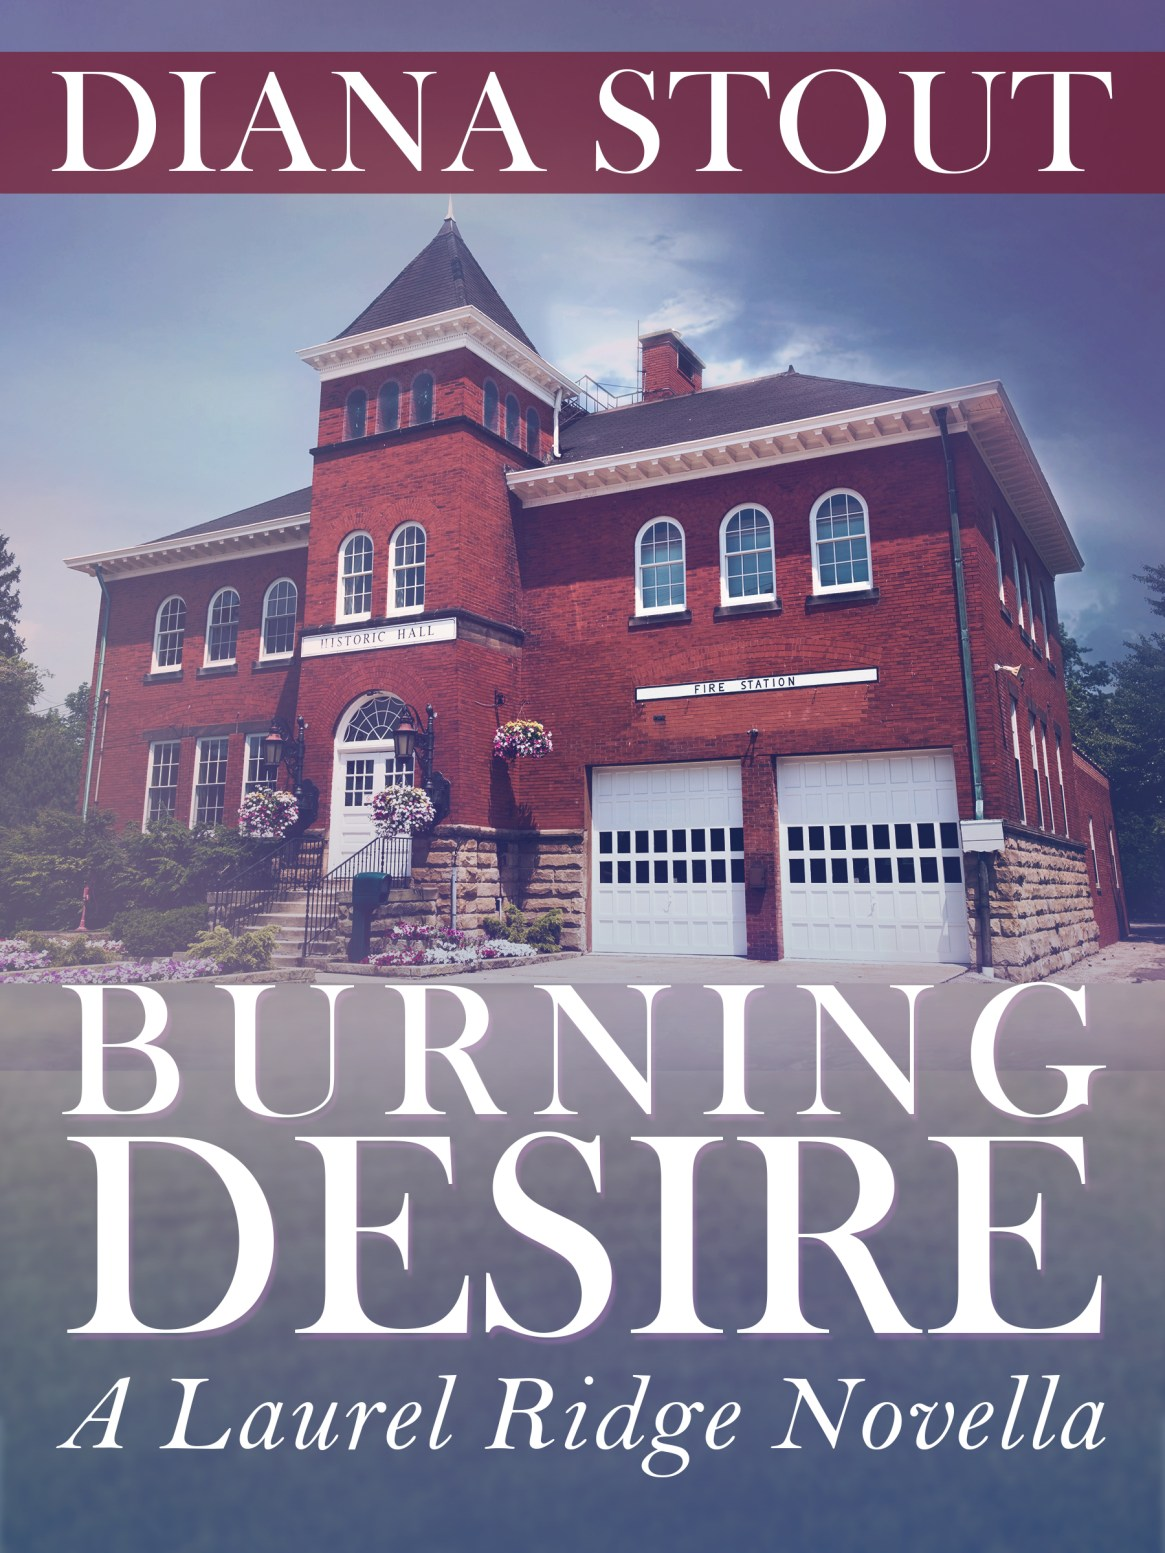 #Final #2 Burning Desire 7 - THE WINNER